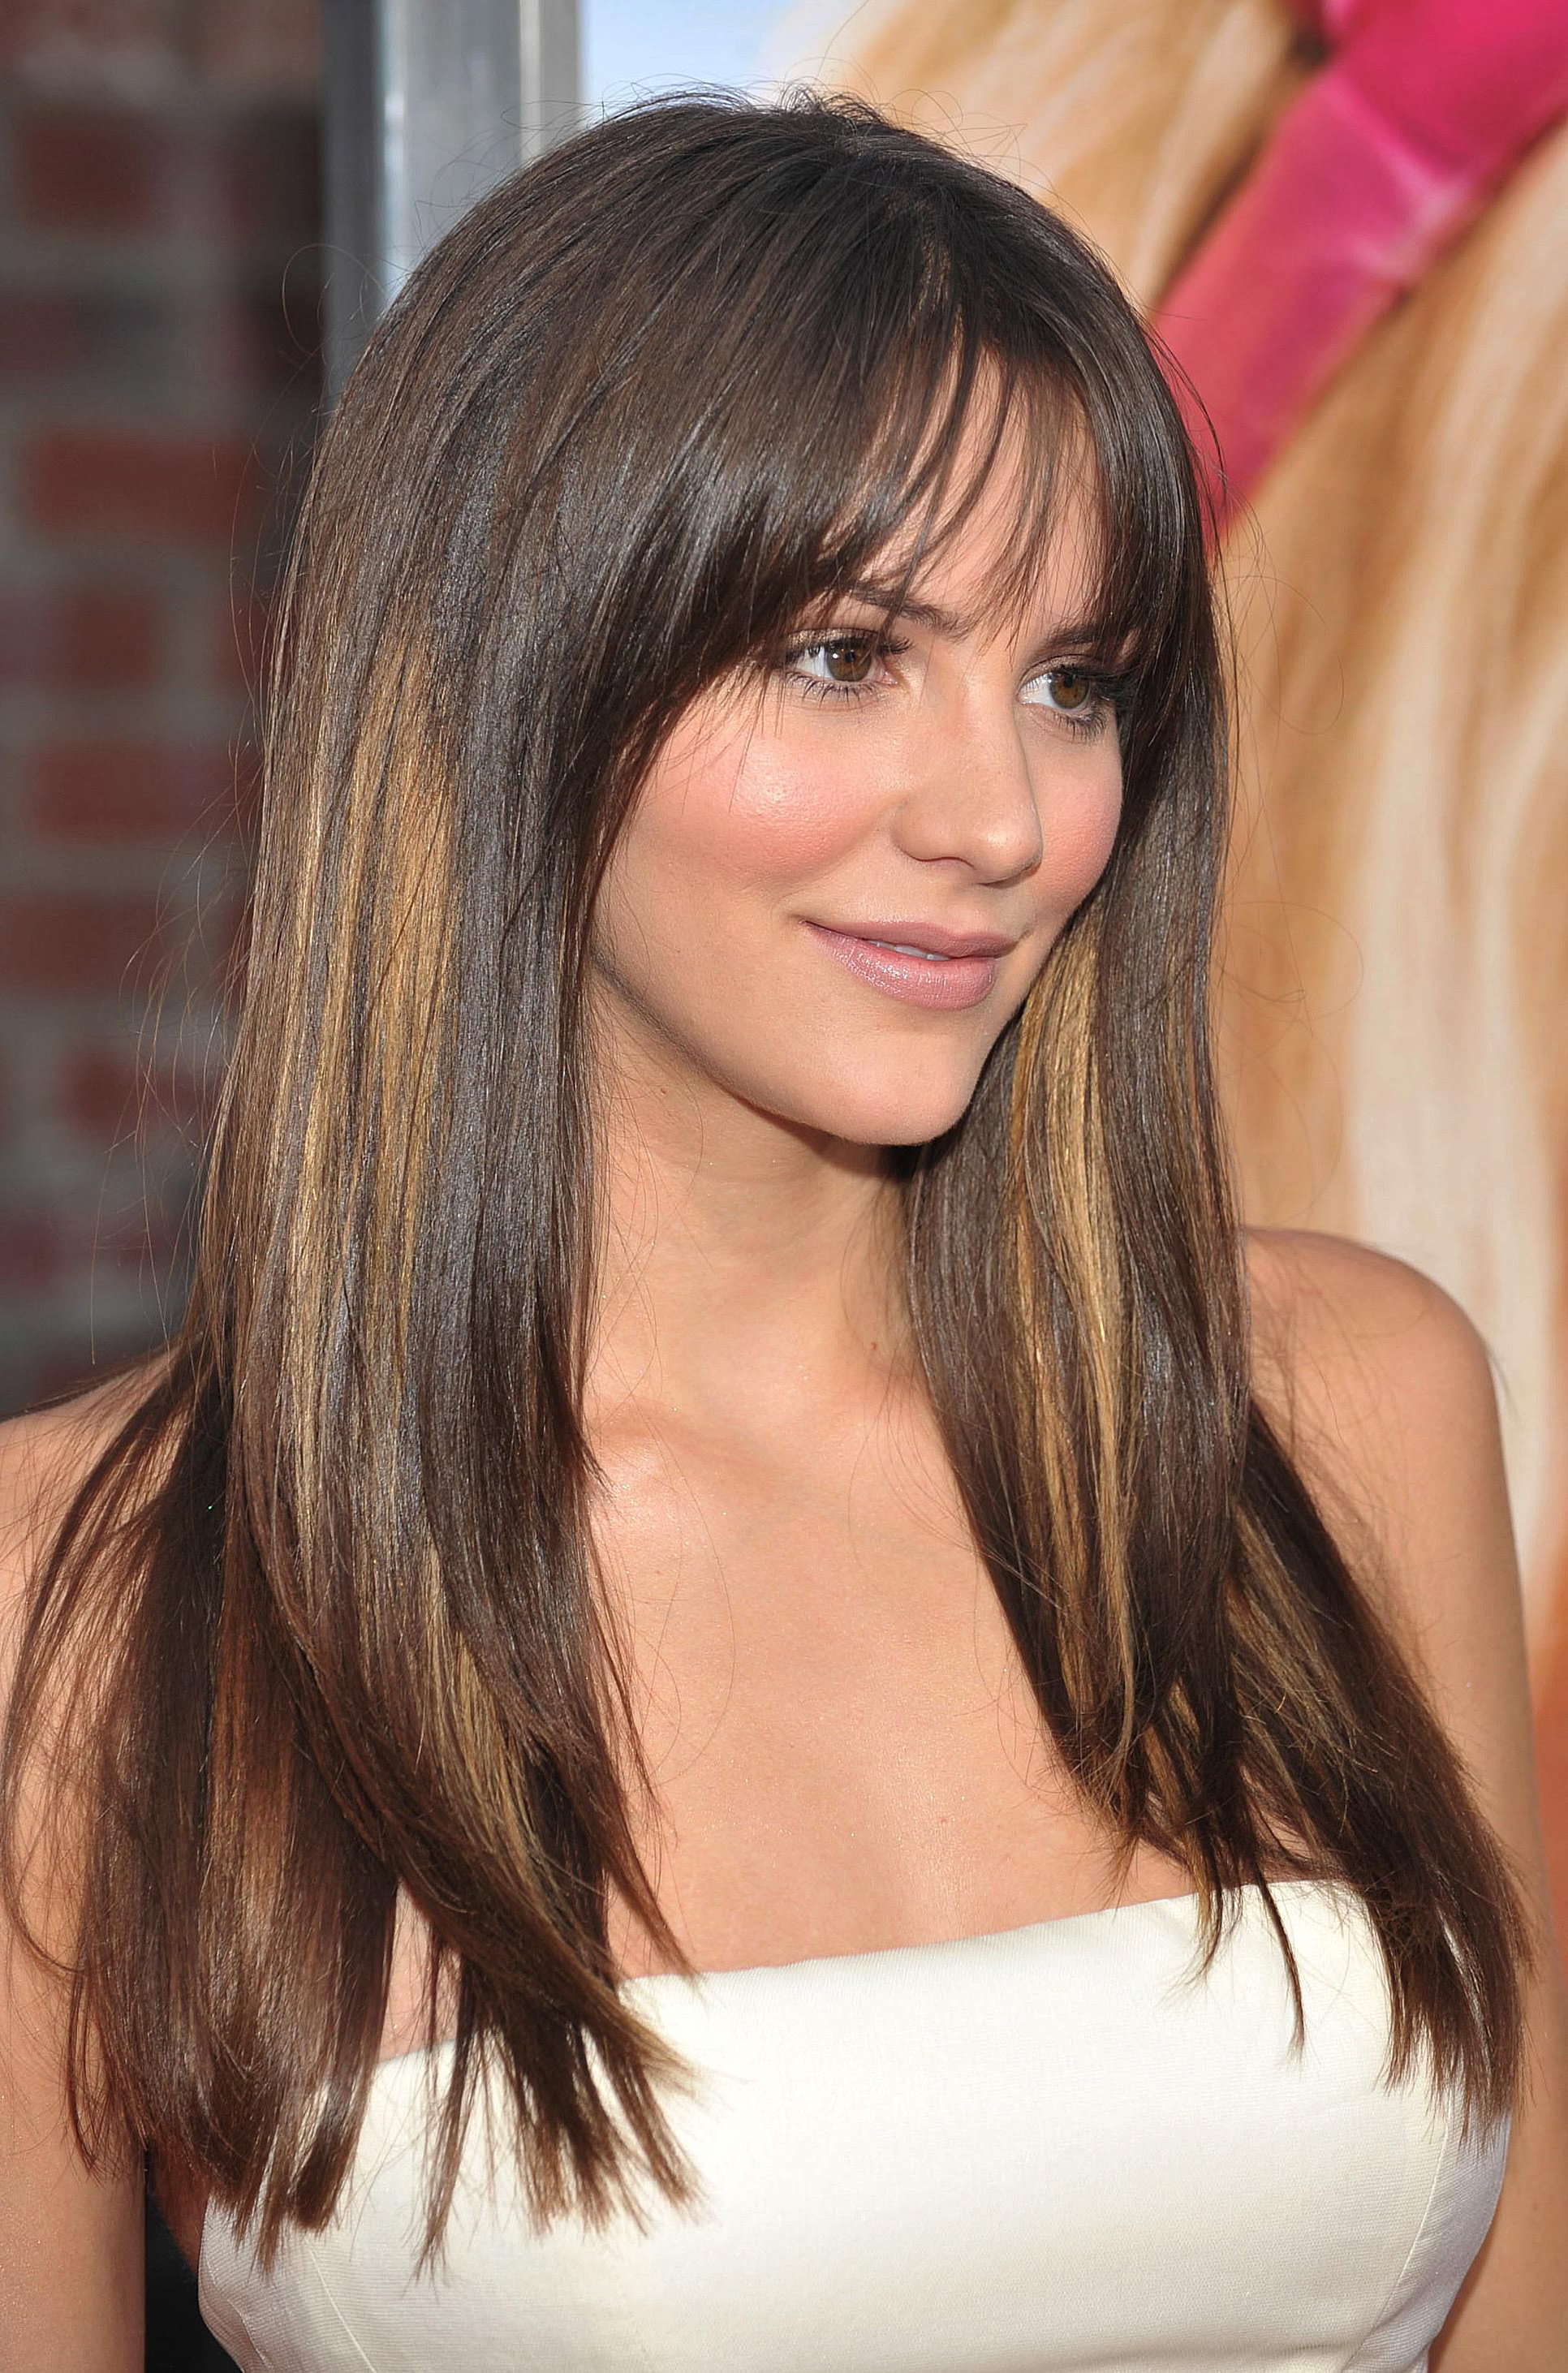 Widely Used Medium Hairstyles For Round Faces With Bangs Pertaining To 35 Flattering Hairstyles For Round Faces (View 17 of 20)